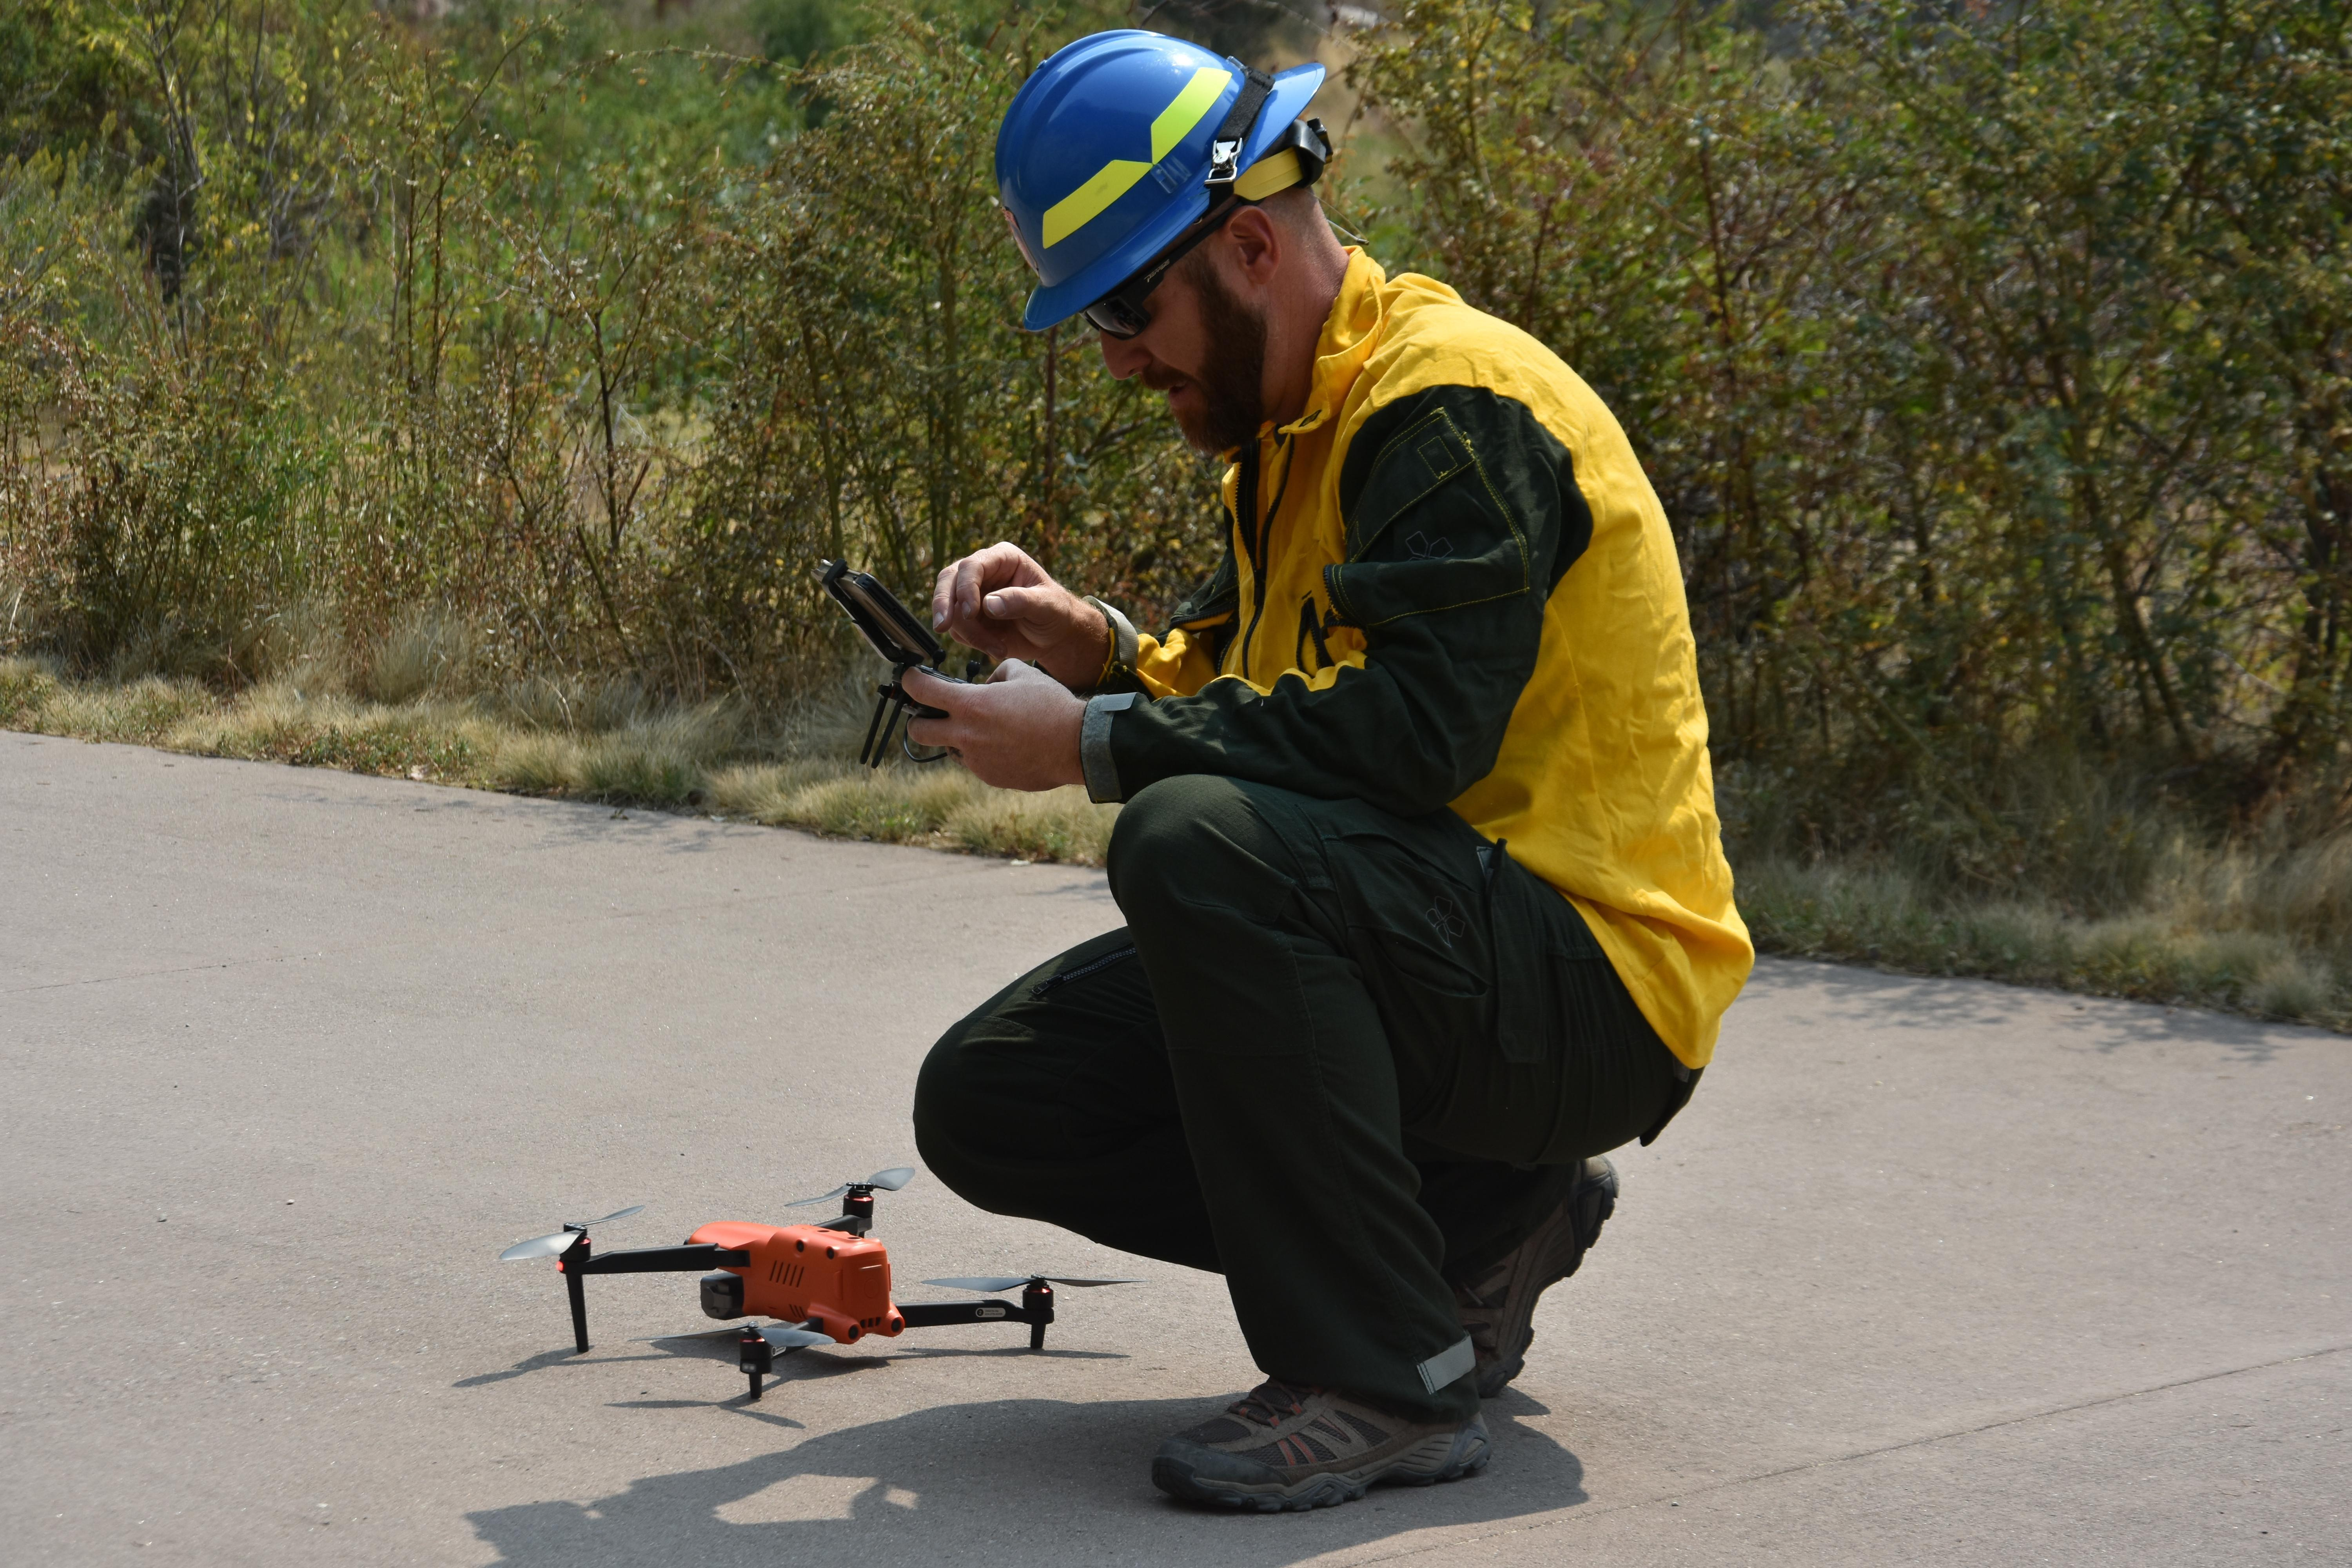 Grizzly Creek Fire CO State Center of Excellence for Advanced Technology  Drone and UAS Pilot